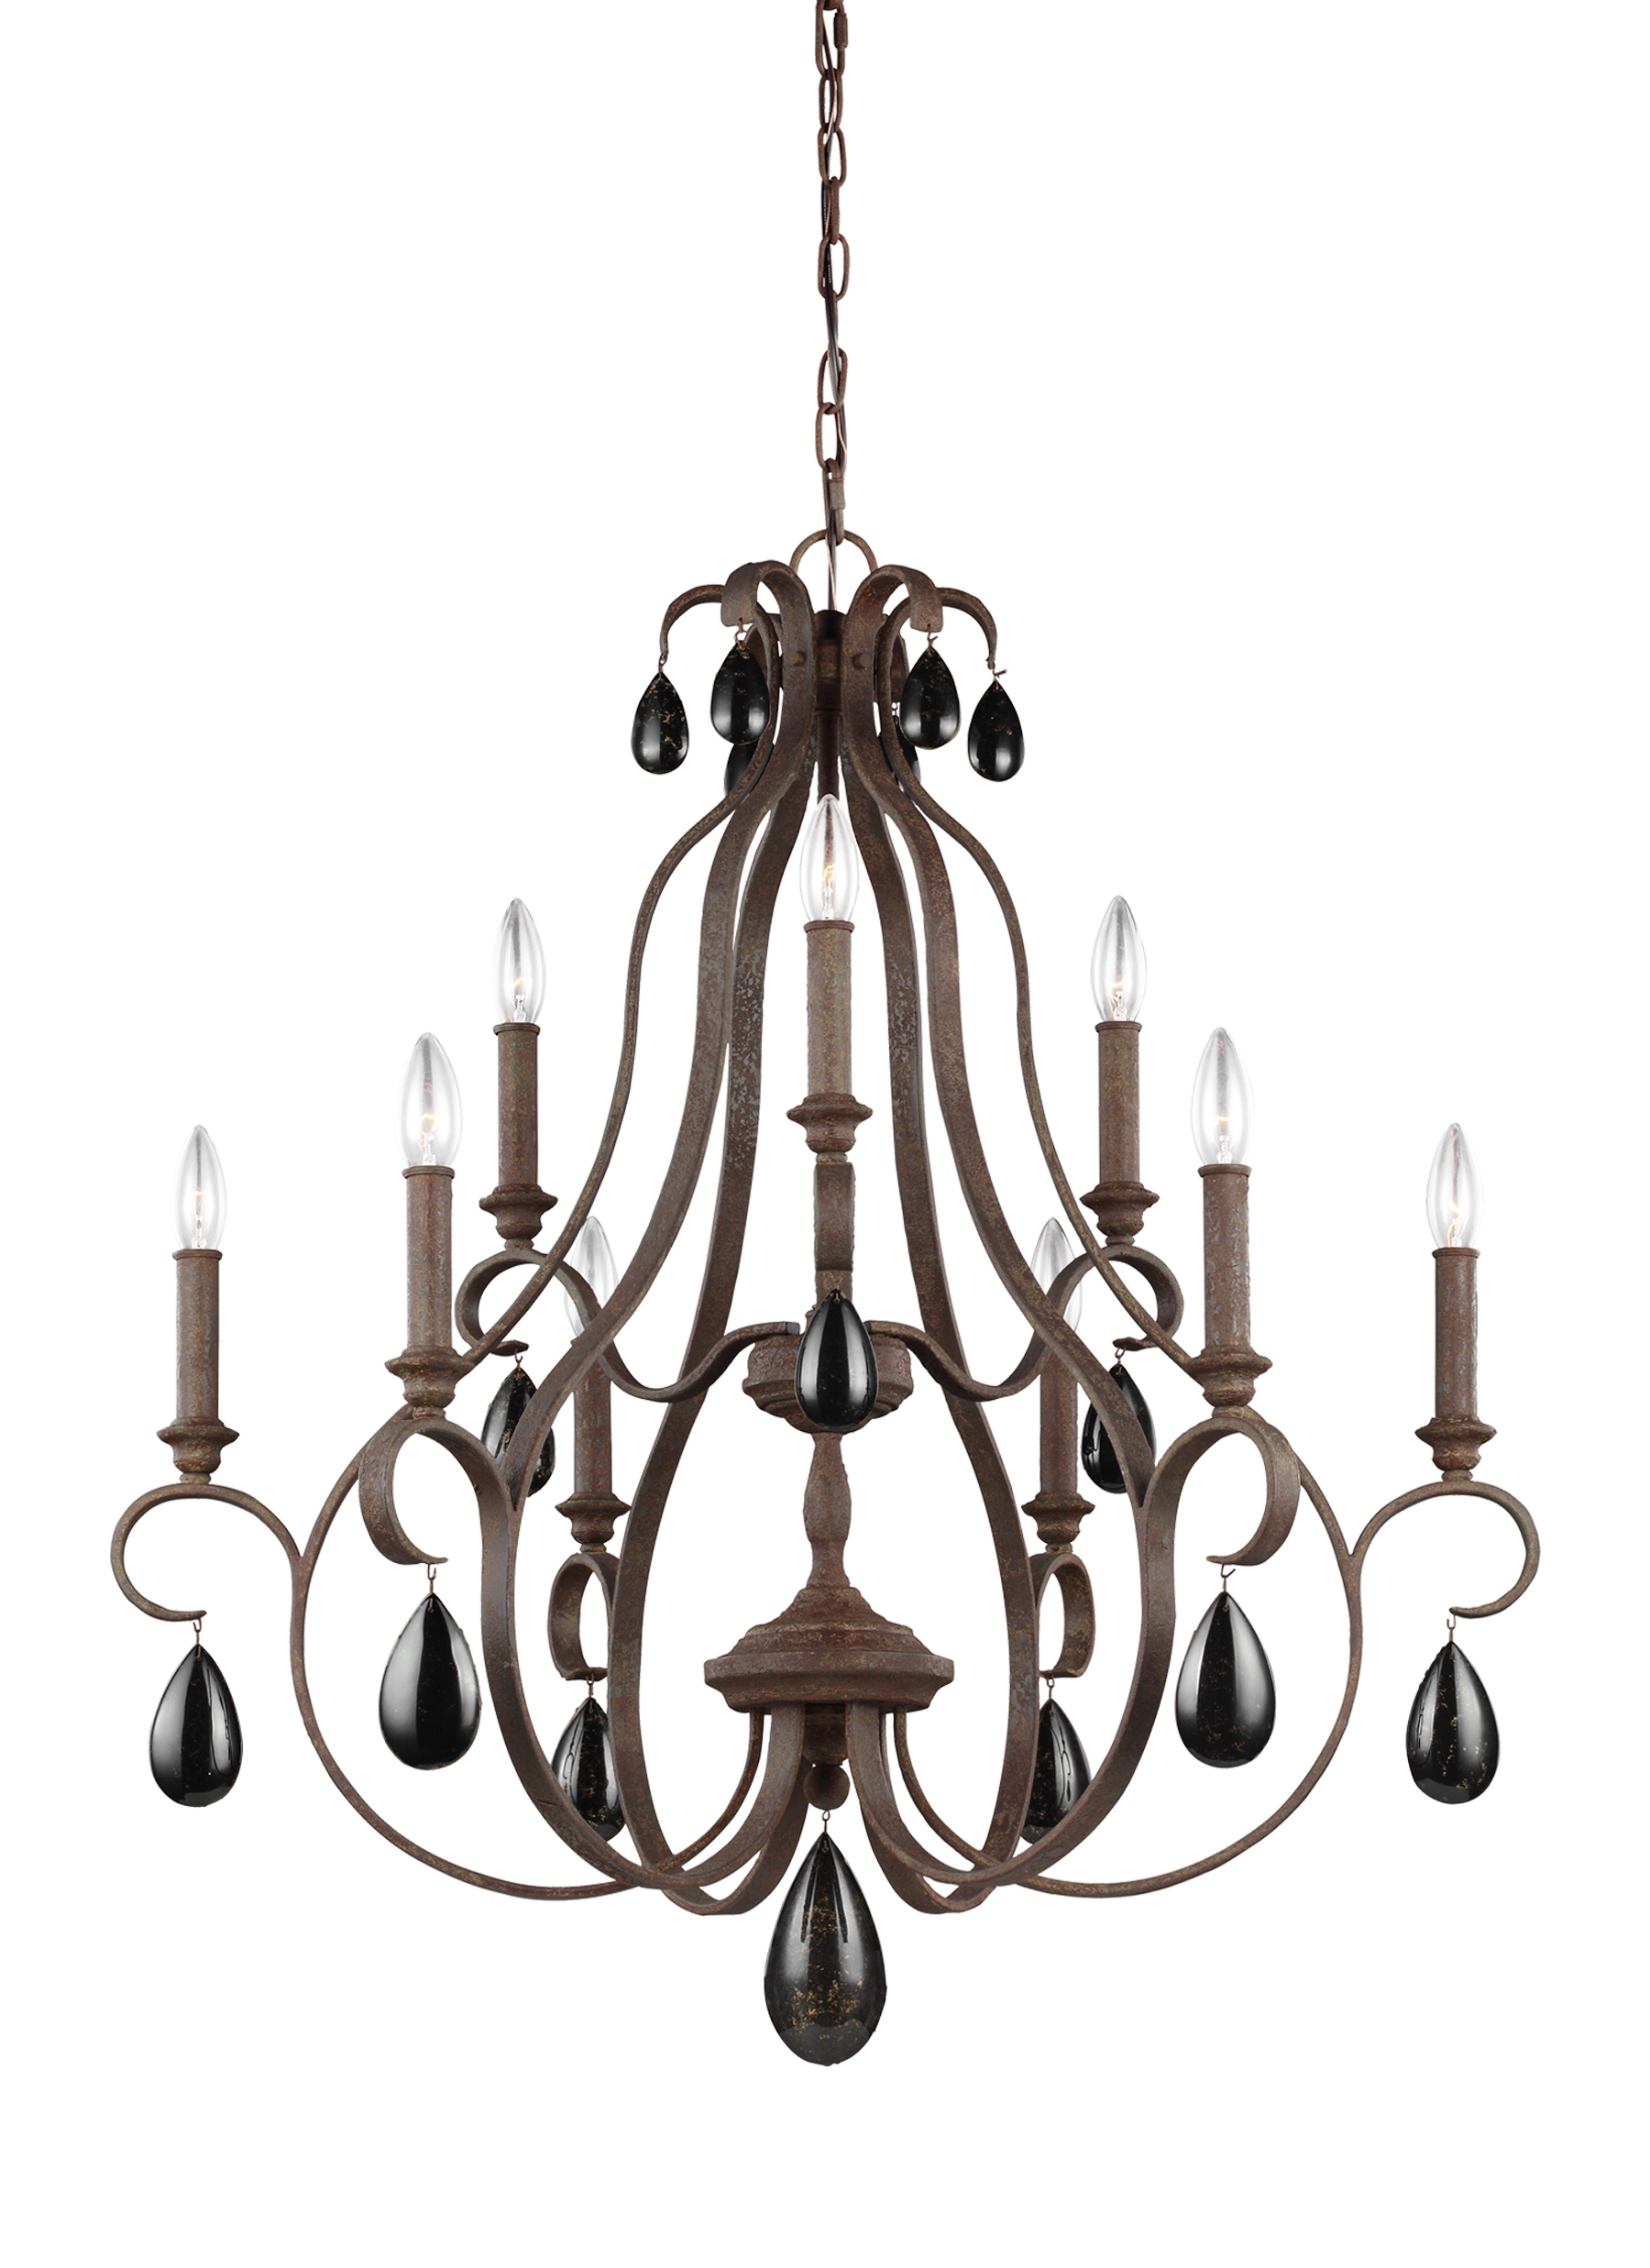 Feiss F30719wi Shipped Direct In Feiss Chandeliers (Image 9 of 25)